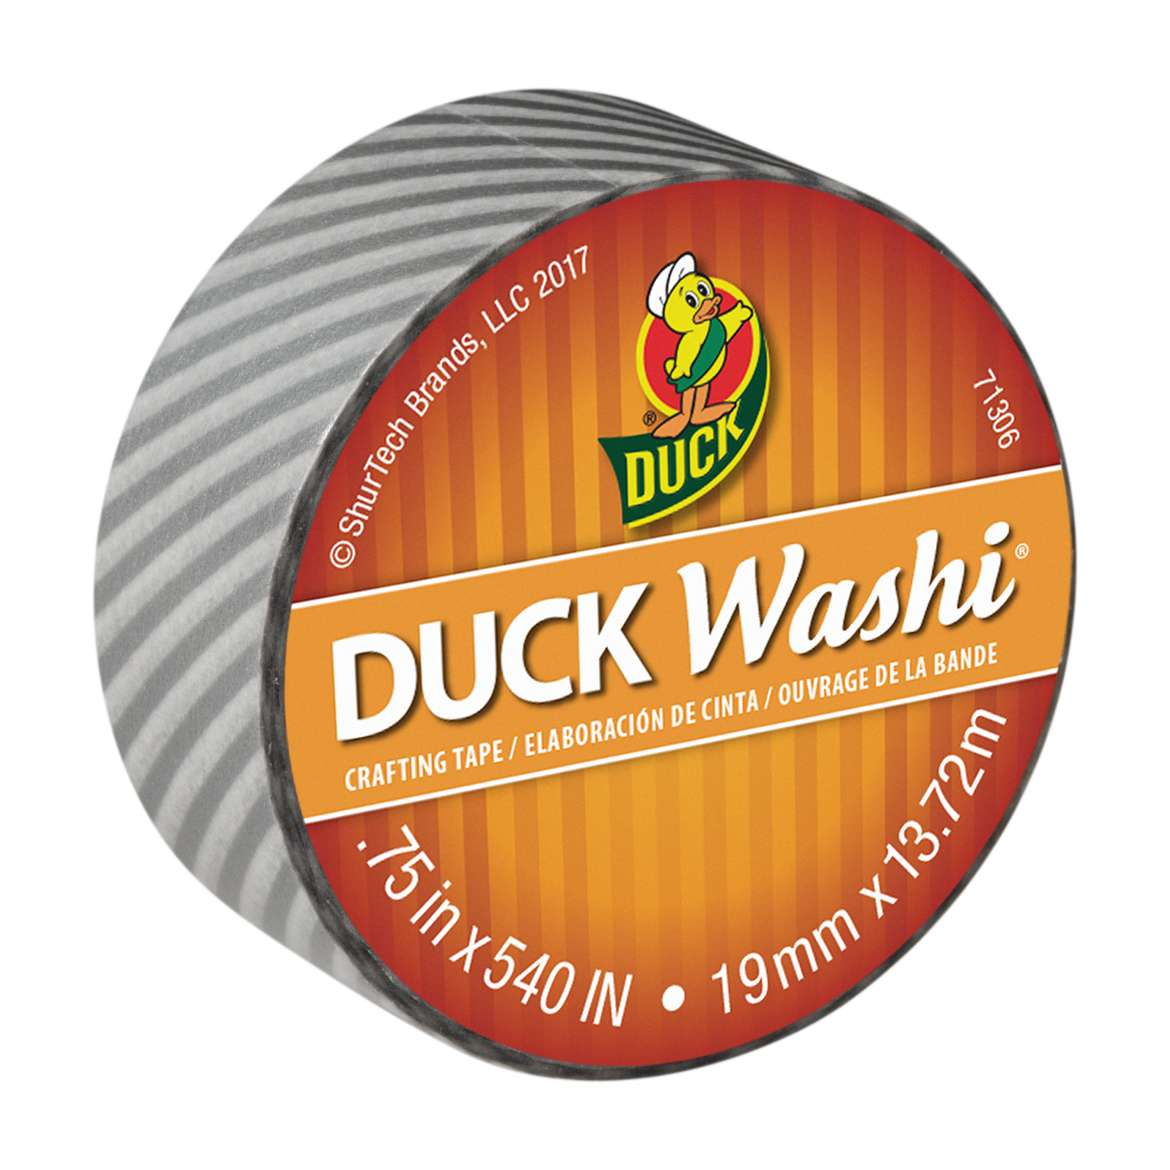 Duck Washi® Crafting Tape - Silver Stripe, 0.75 in. X 15 yd. Image